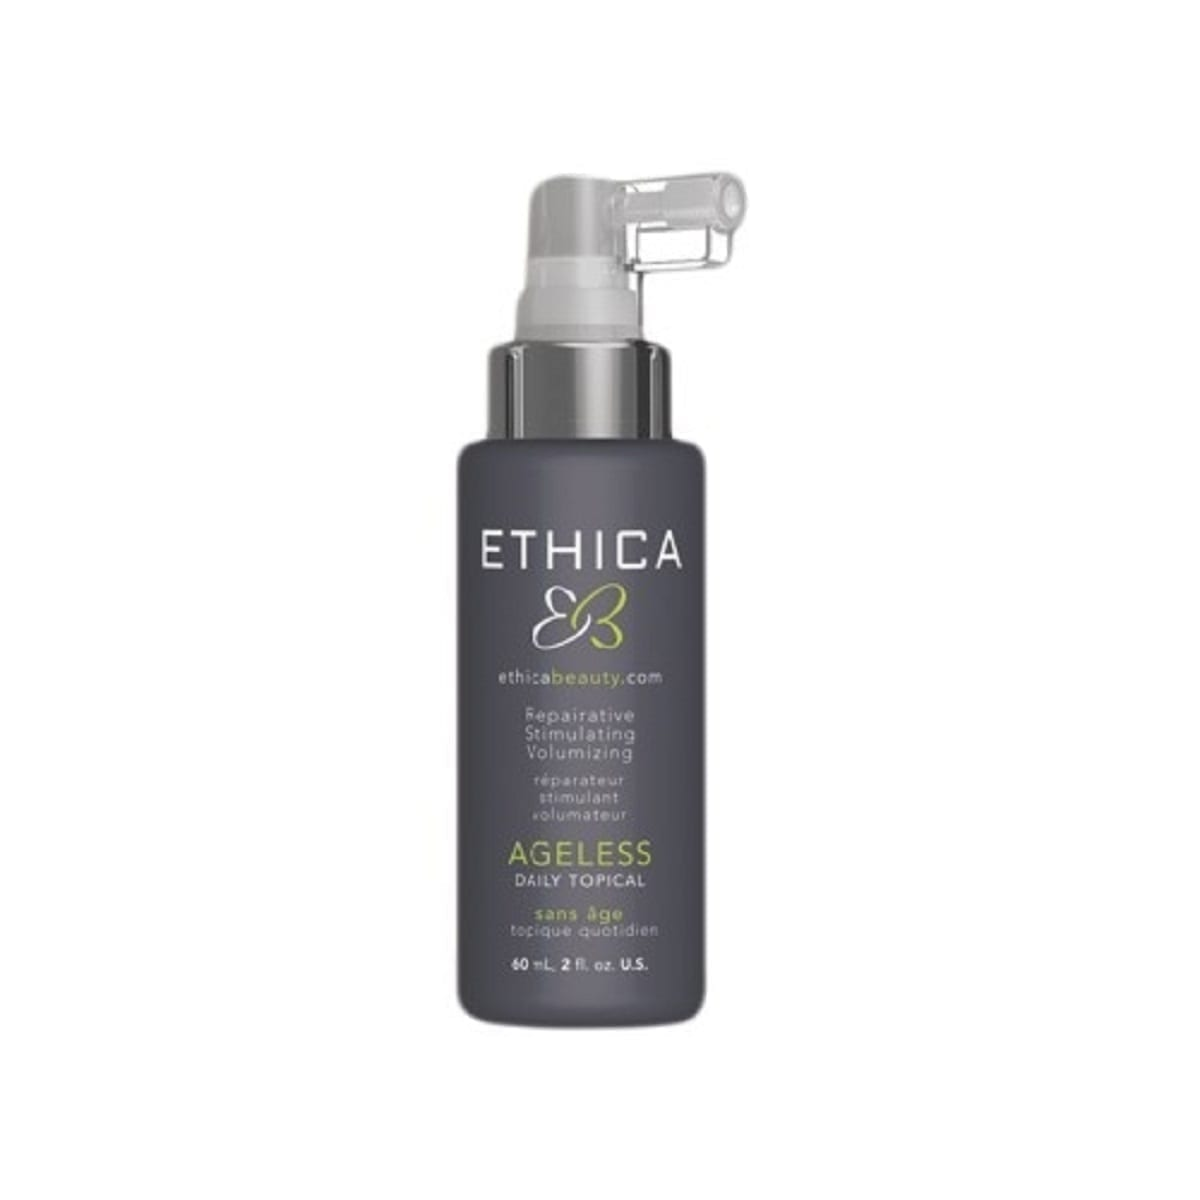 ETHICA-Anti-Aging-Stimulating-Daily-Topical